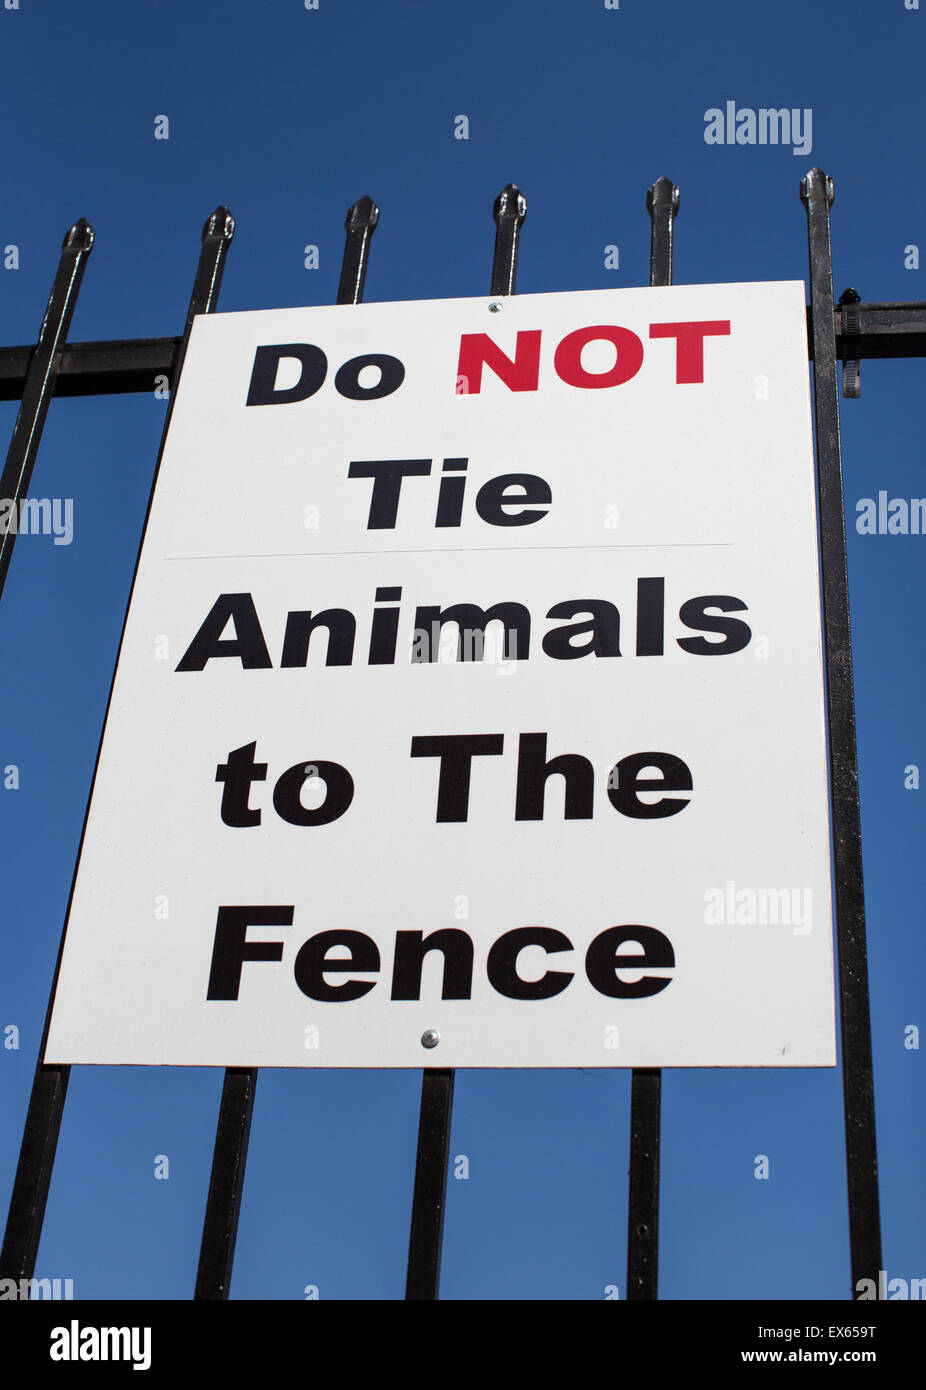 Do Not Tie Animals To The Fence sign. - Stock Image